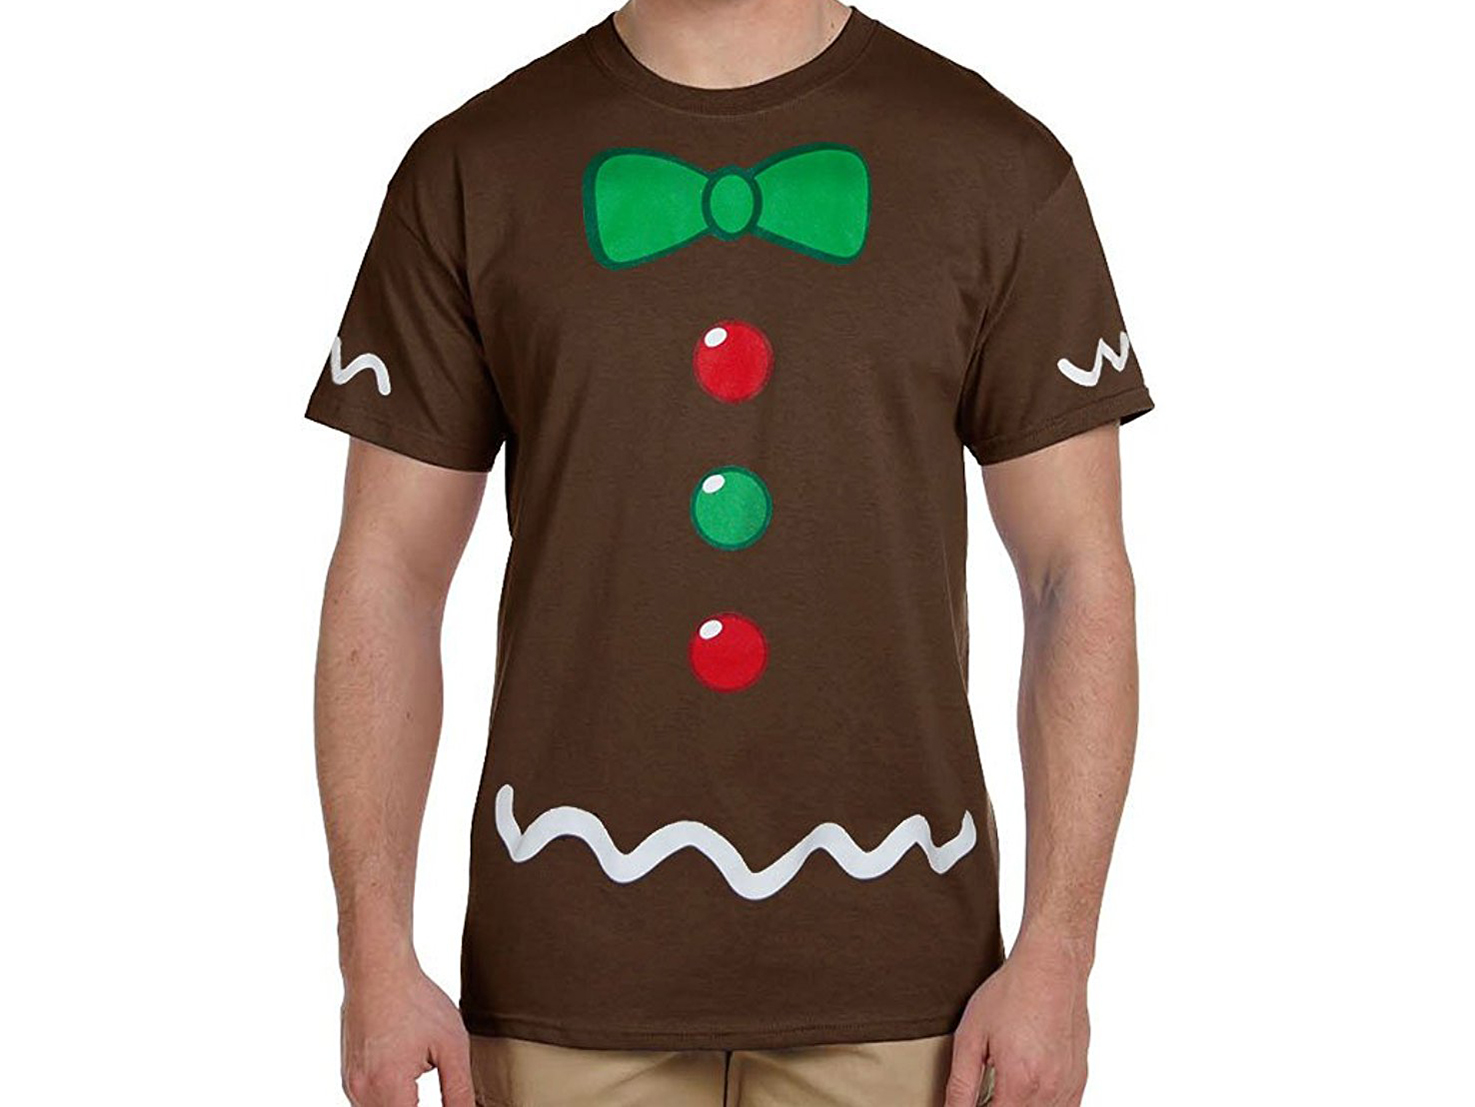 gingerbread man t shirt for men